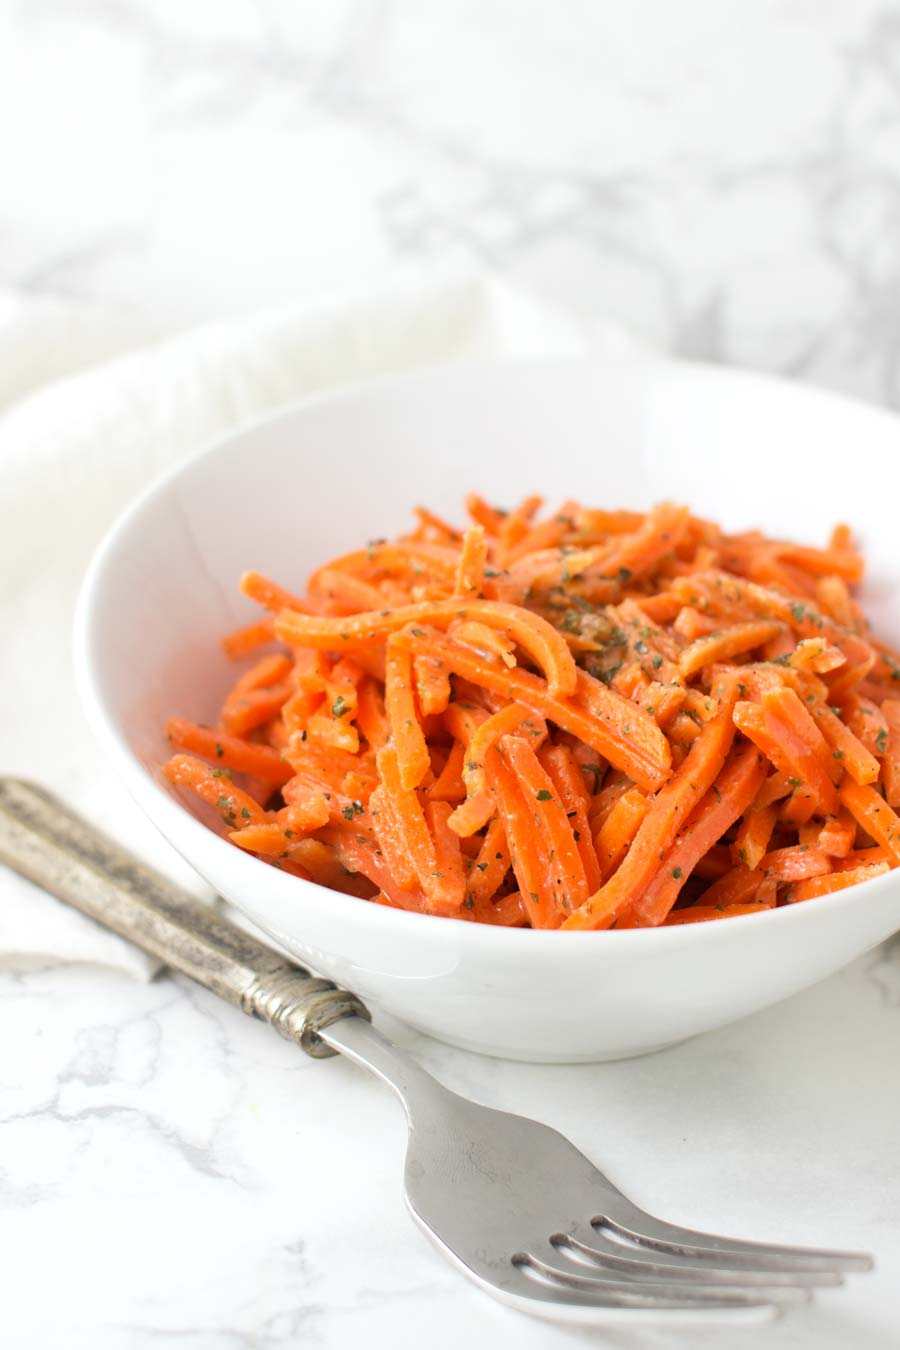 Moroccan Carrots recipe from acleanplate.com #paleo #aip #glutenfree